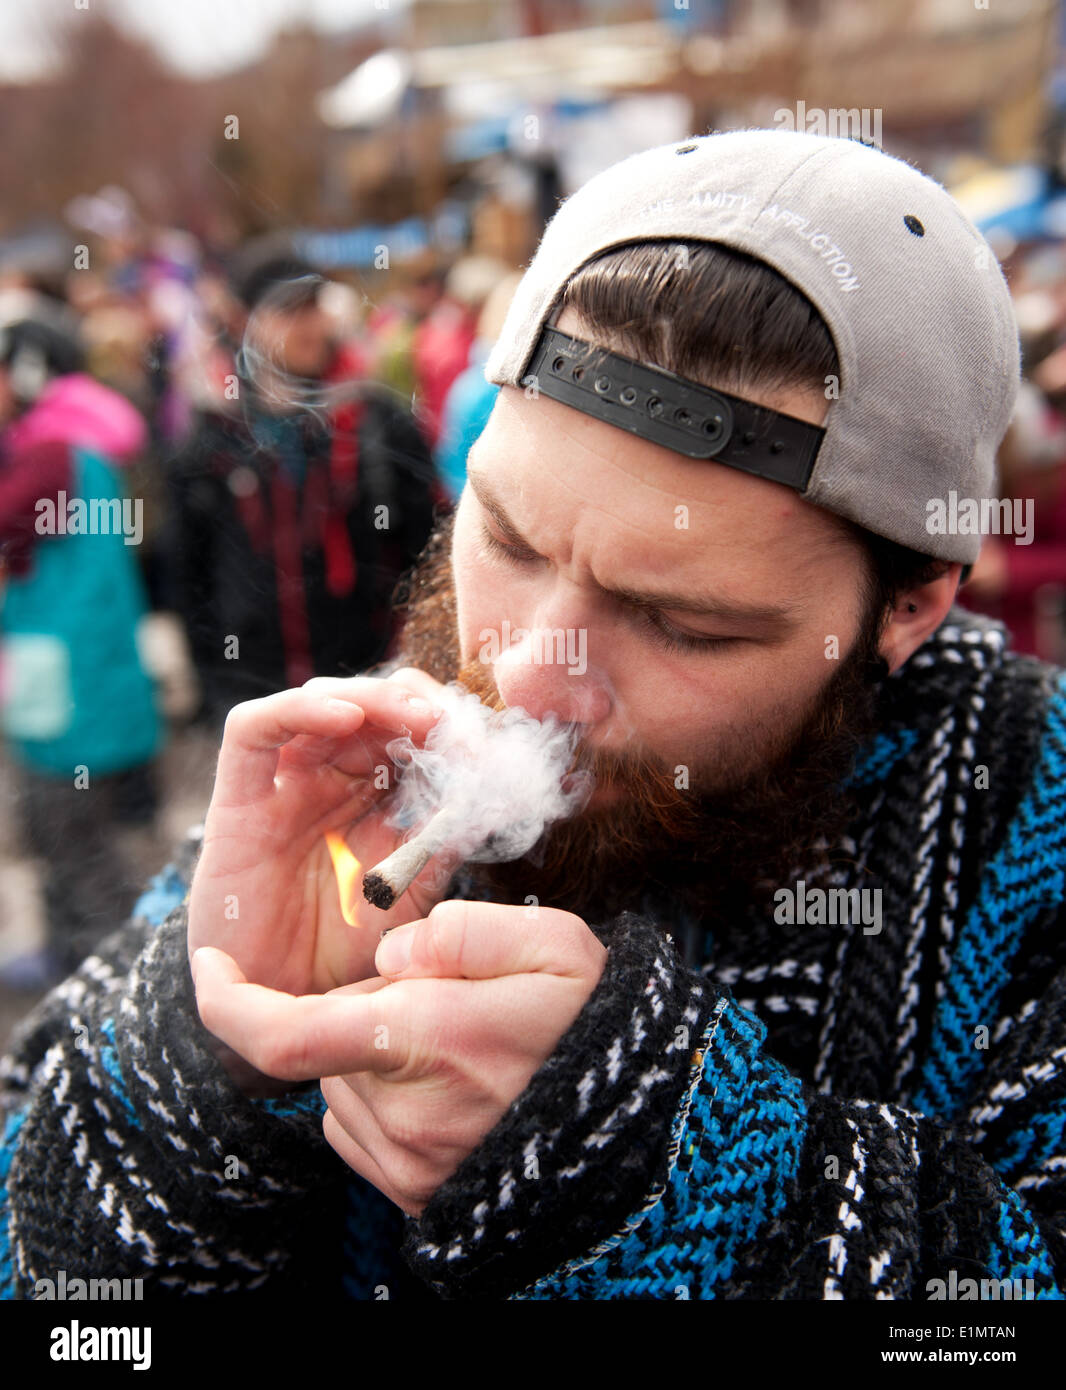 A man lights a marijuana cigarette, or joint, during a 420 day celebration in the Whistler village. Whistler BC, Canada. - Stock Image